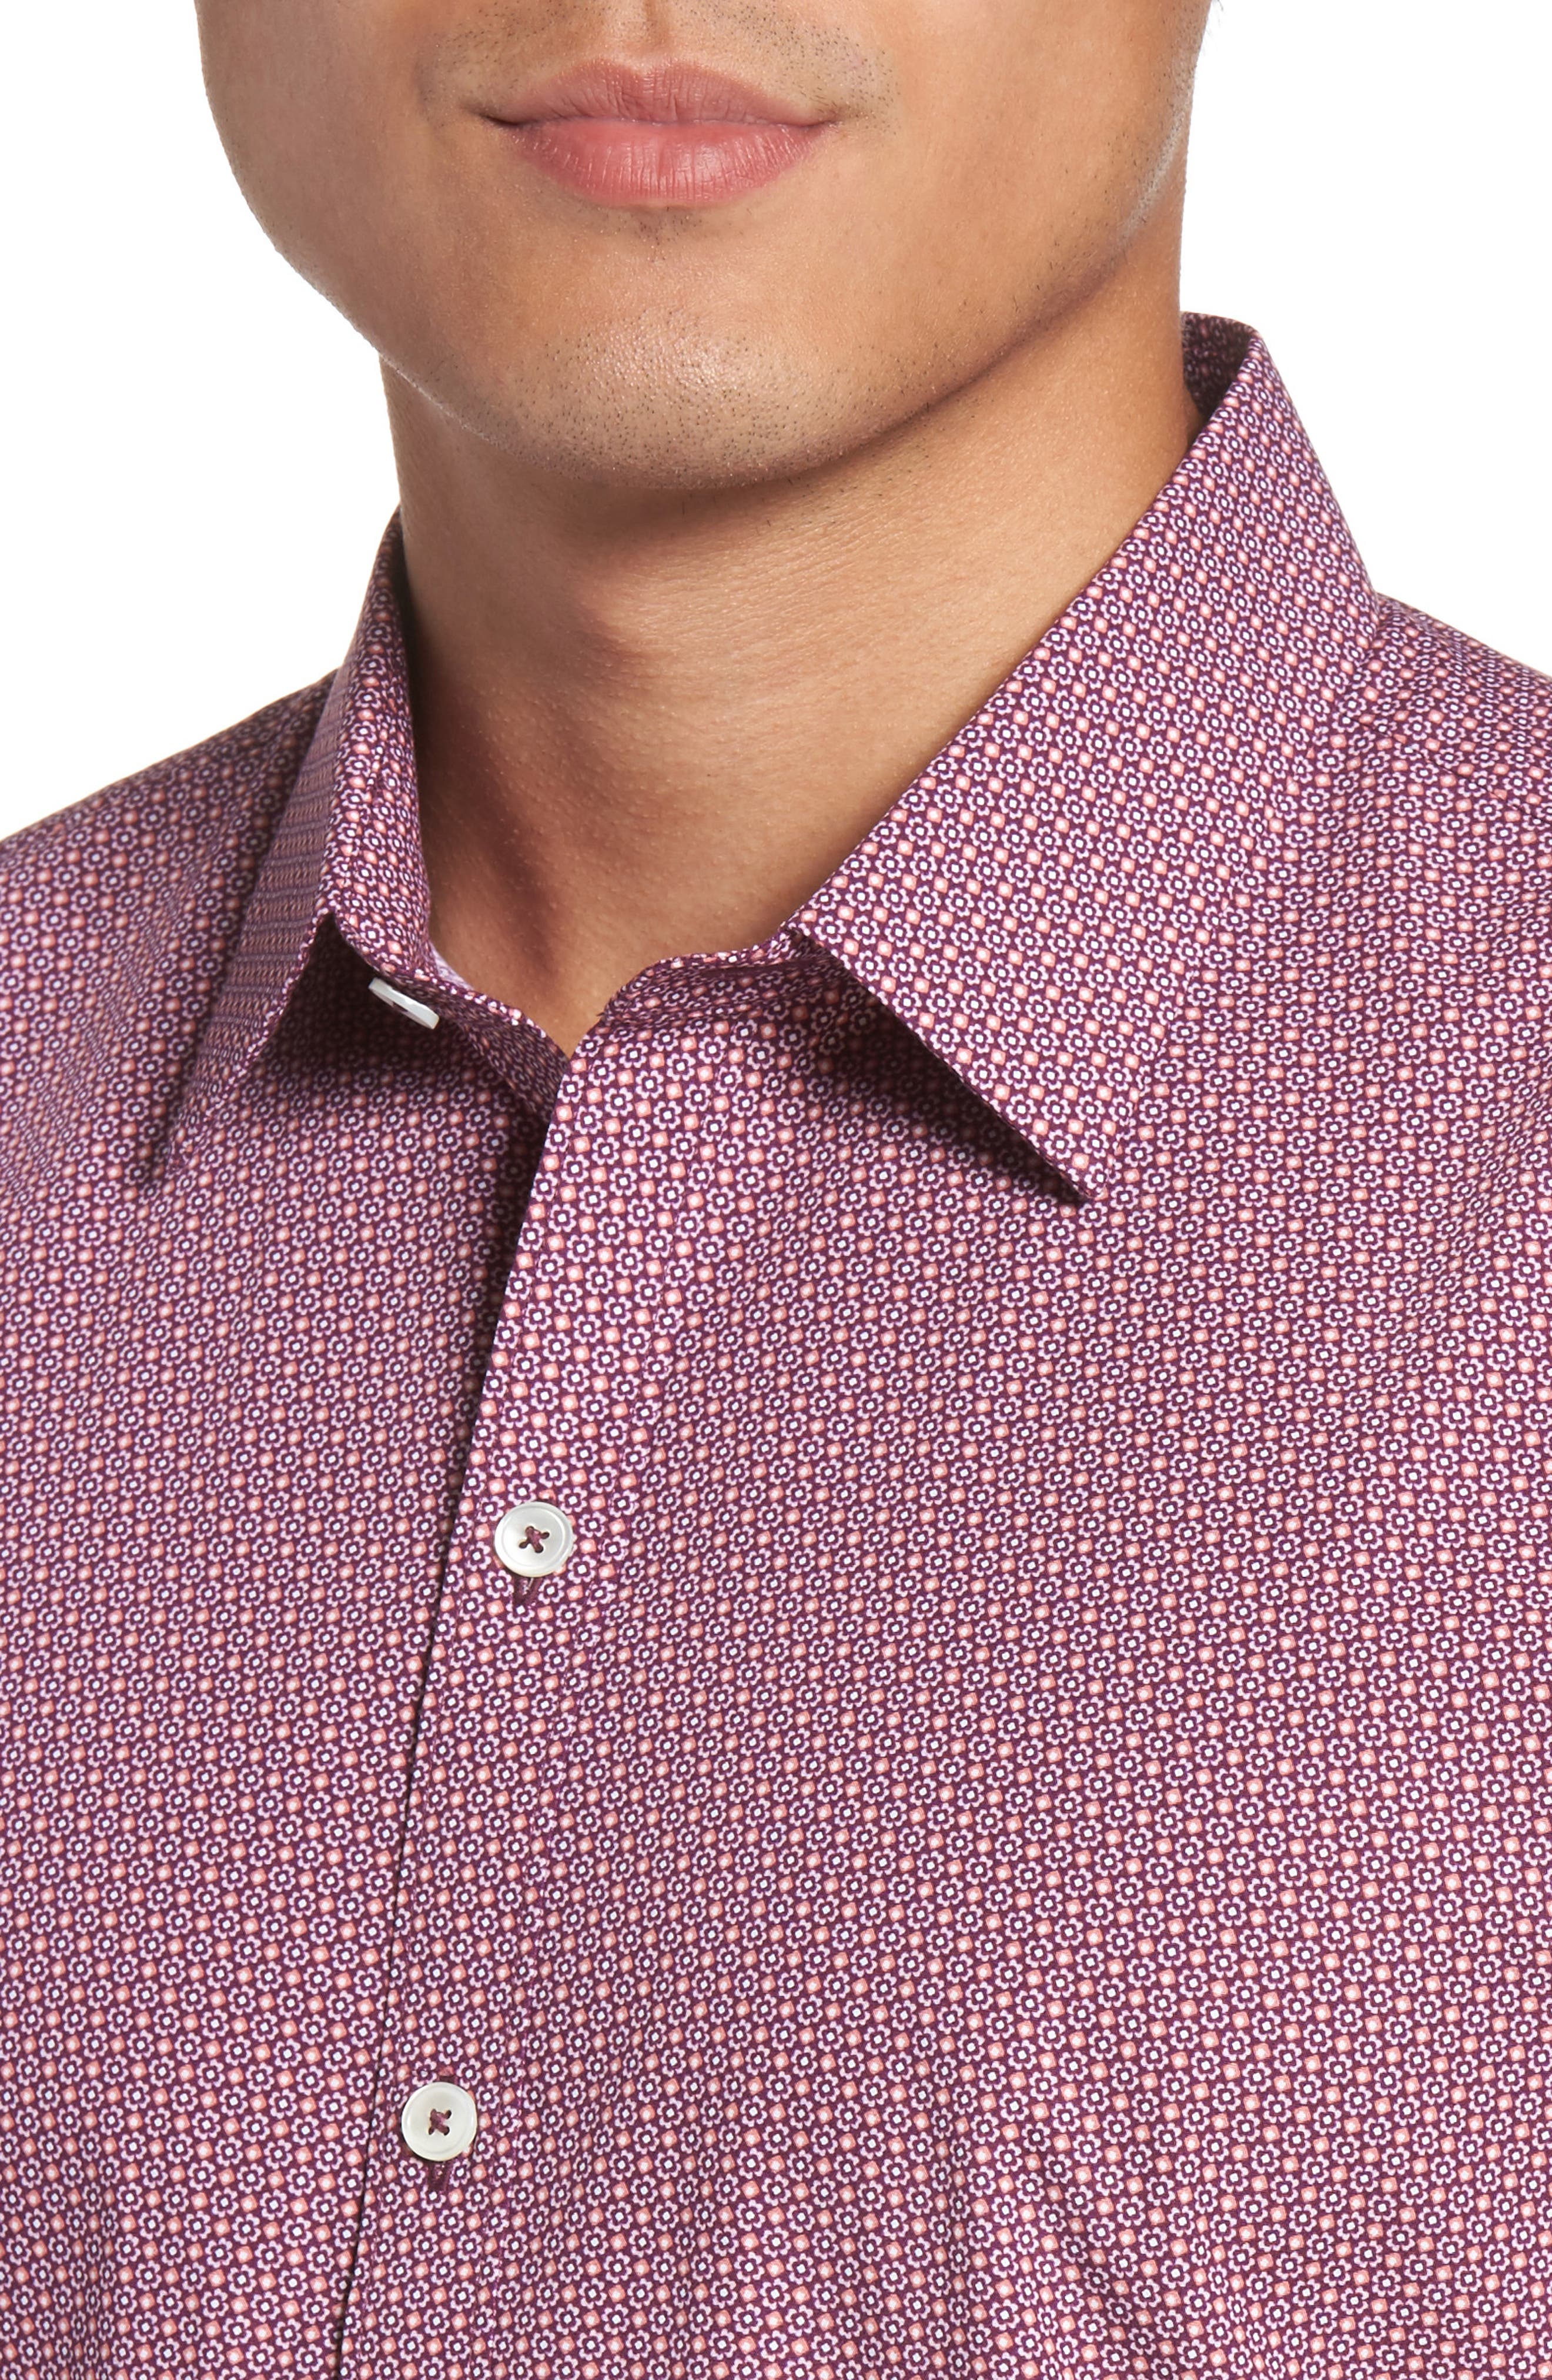 Alternate Image 4  - Zachary Prell Riddle Slim Fit Print Sport Shirt